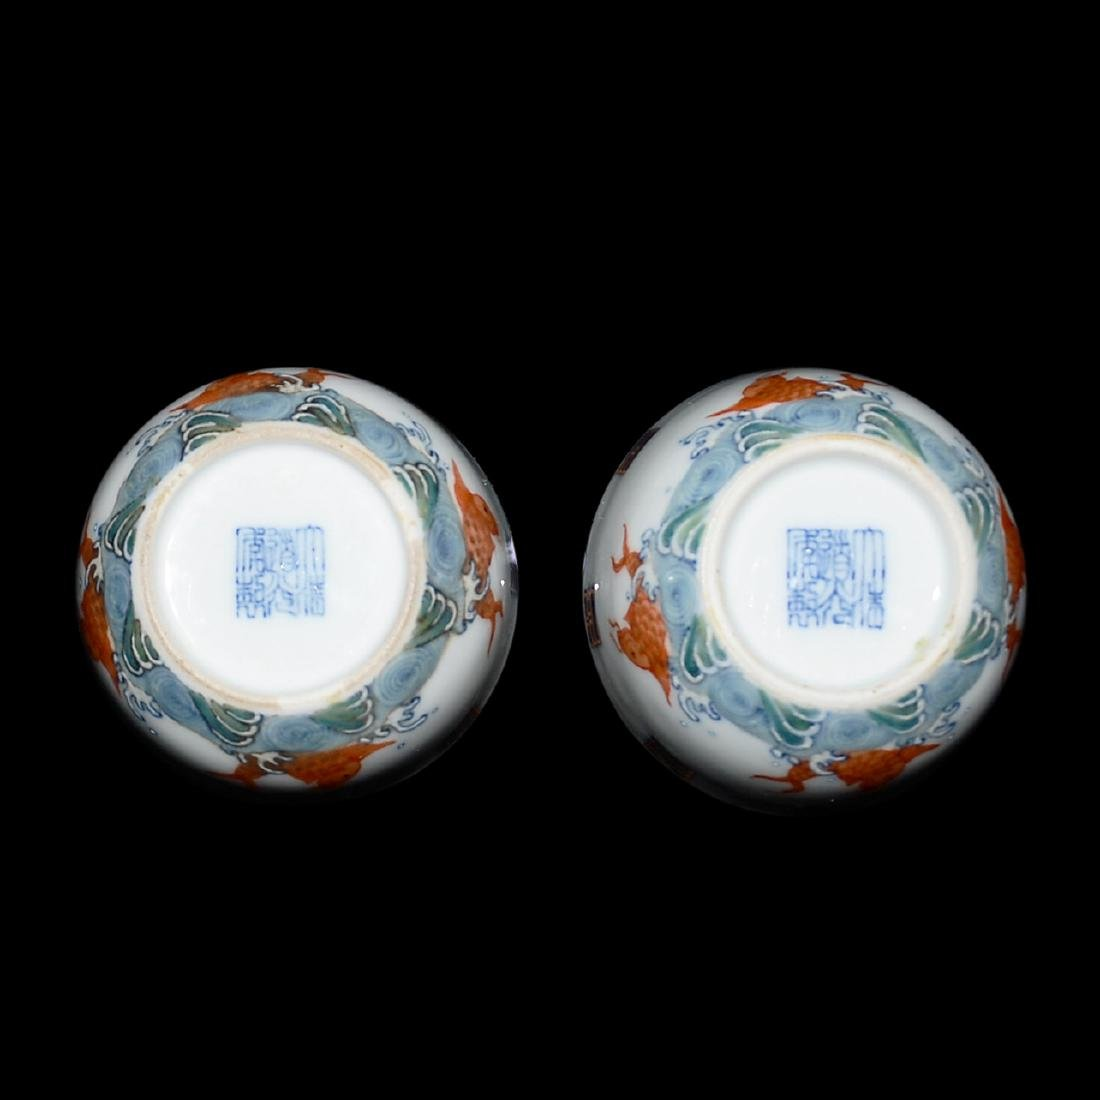 Qing, A Pair of Famille-rose with Underglazed Blue and - 4